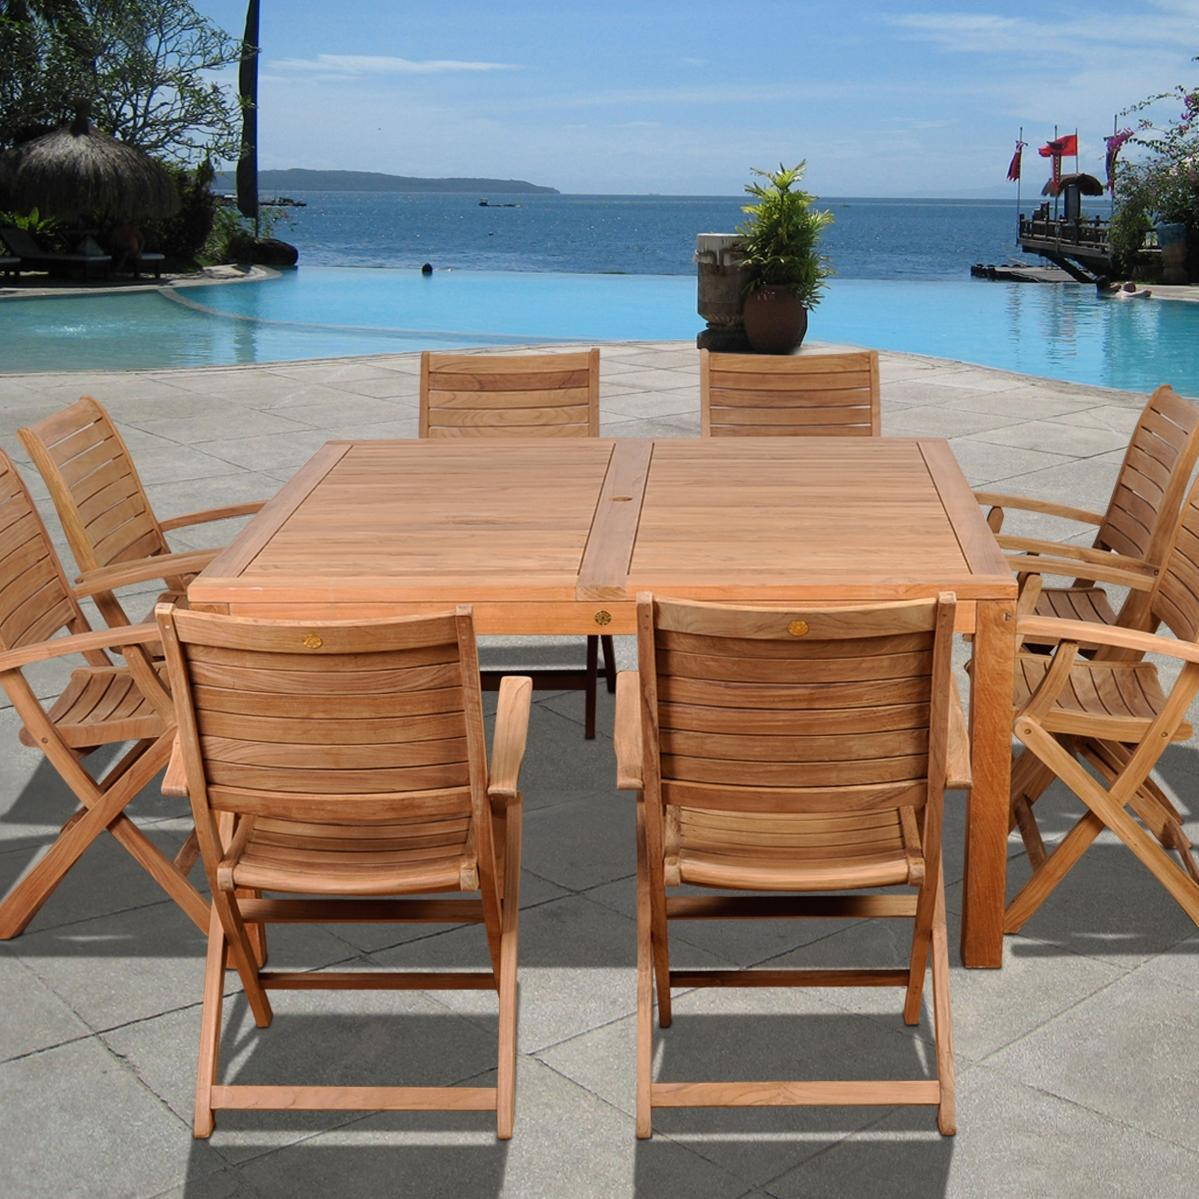 Amazonia Teak Boynton 8-person Teak Patio Dining Set With Folding Chairs